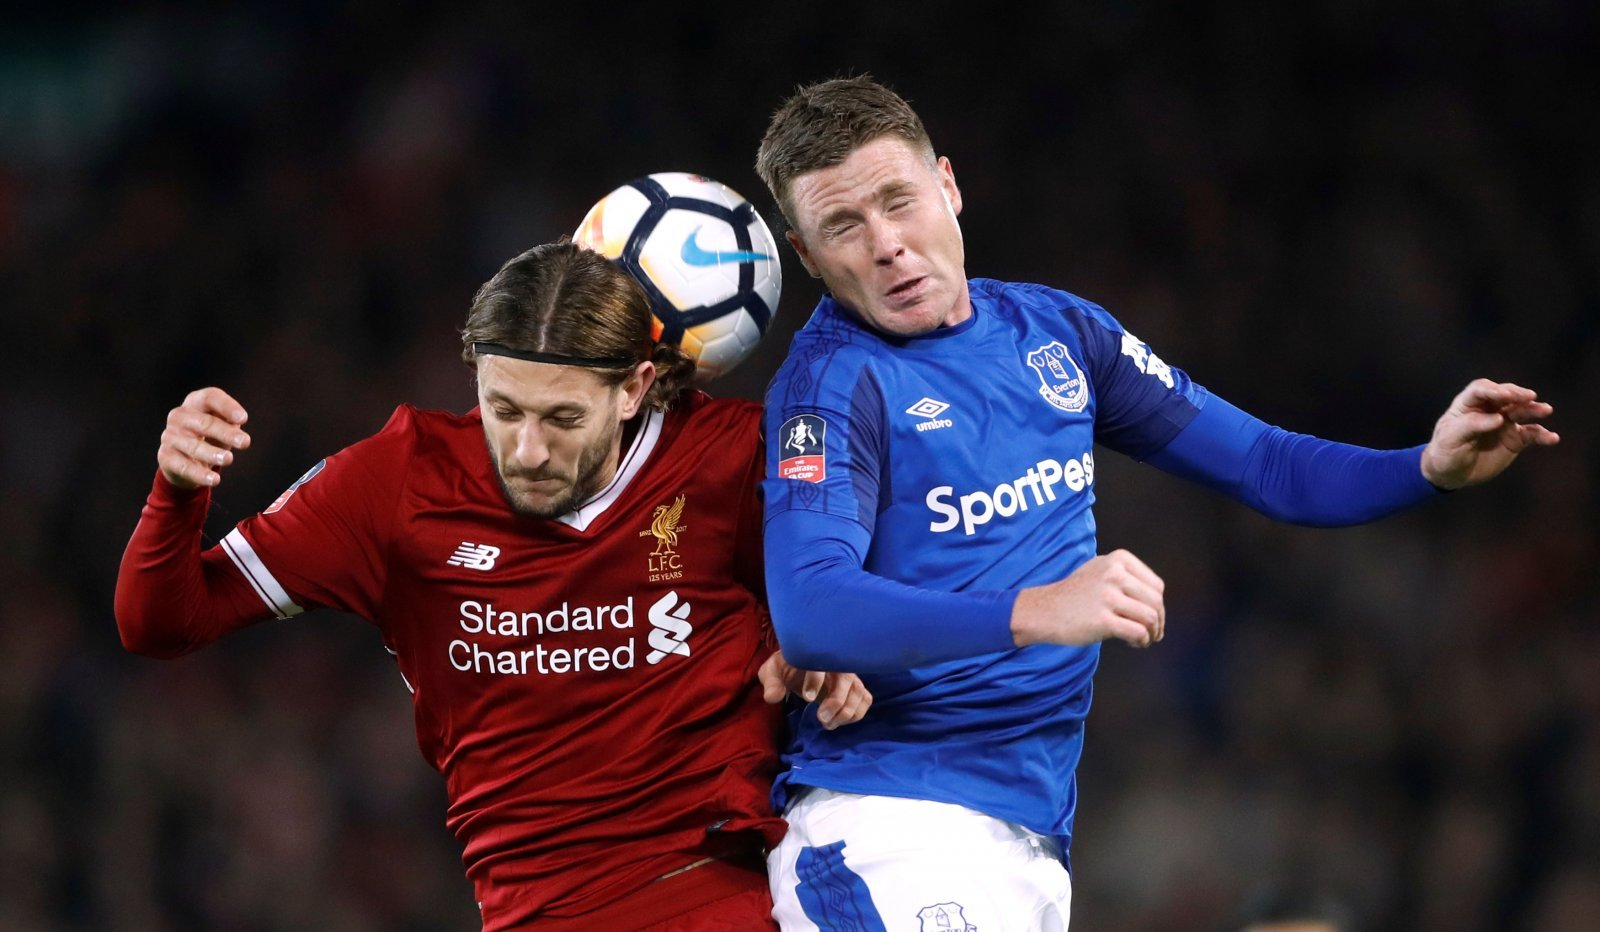 McCarthy faces a tough fight breaking into Everton's starting XI